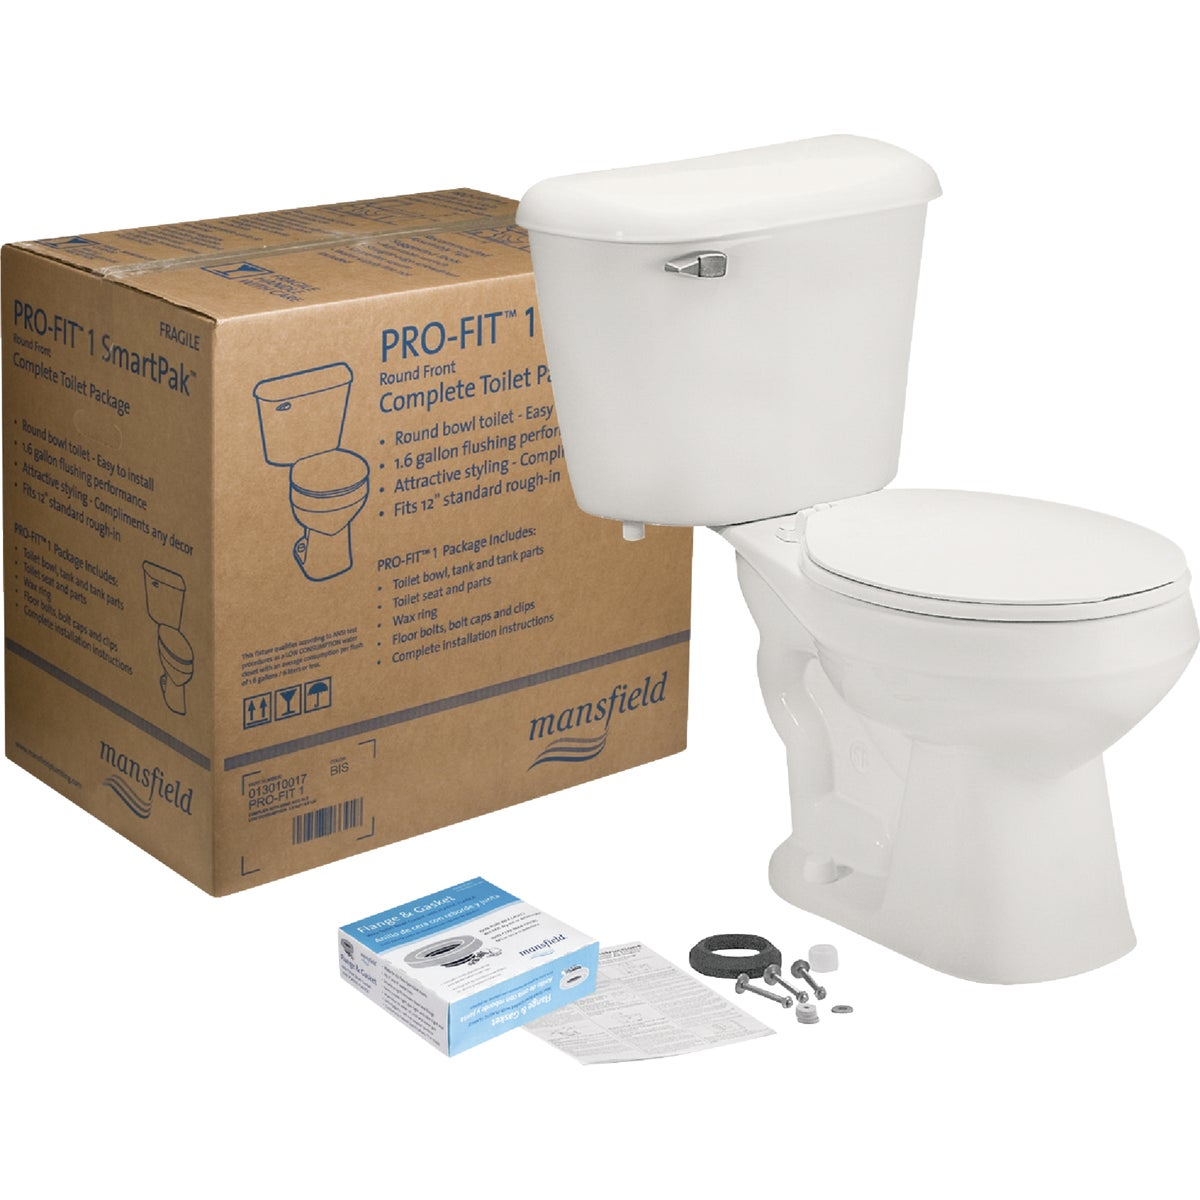 PRO-FIT 1 1.28GPF RF WHT - 041300017 by Mansfield Plumbing